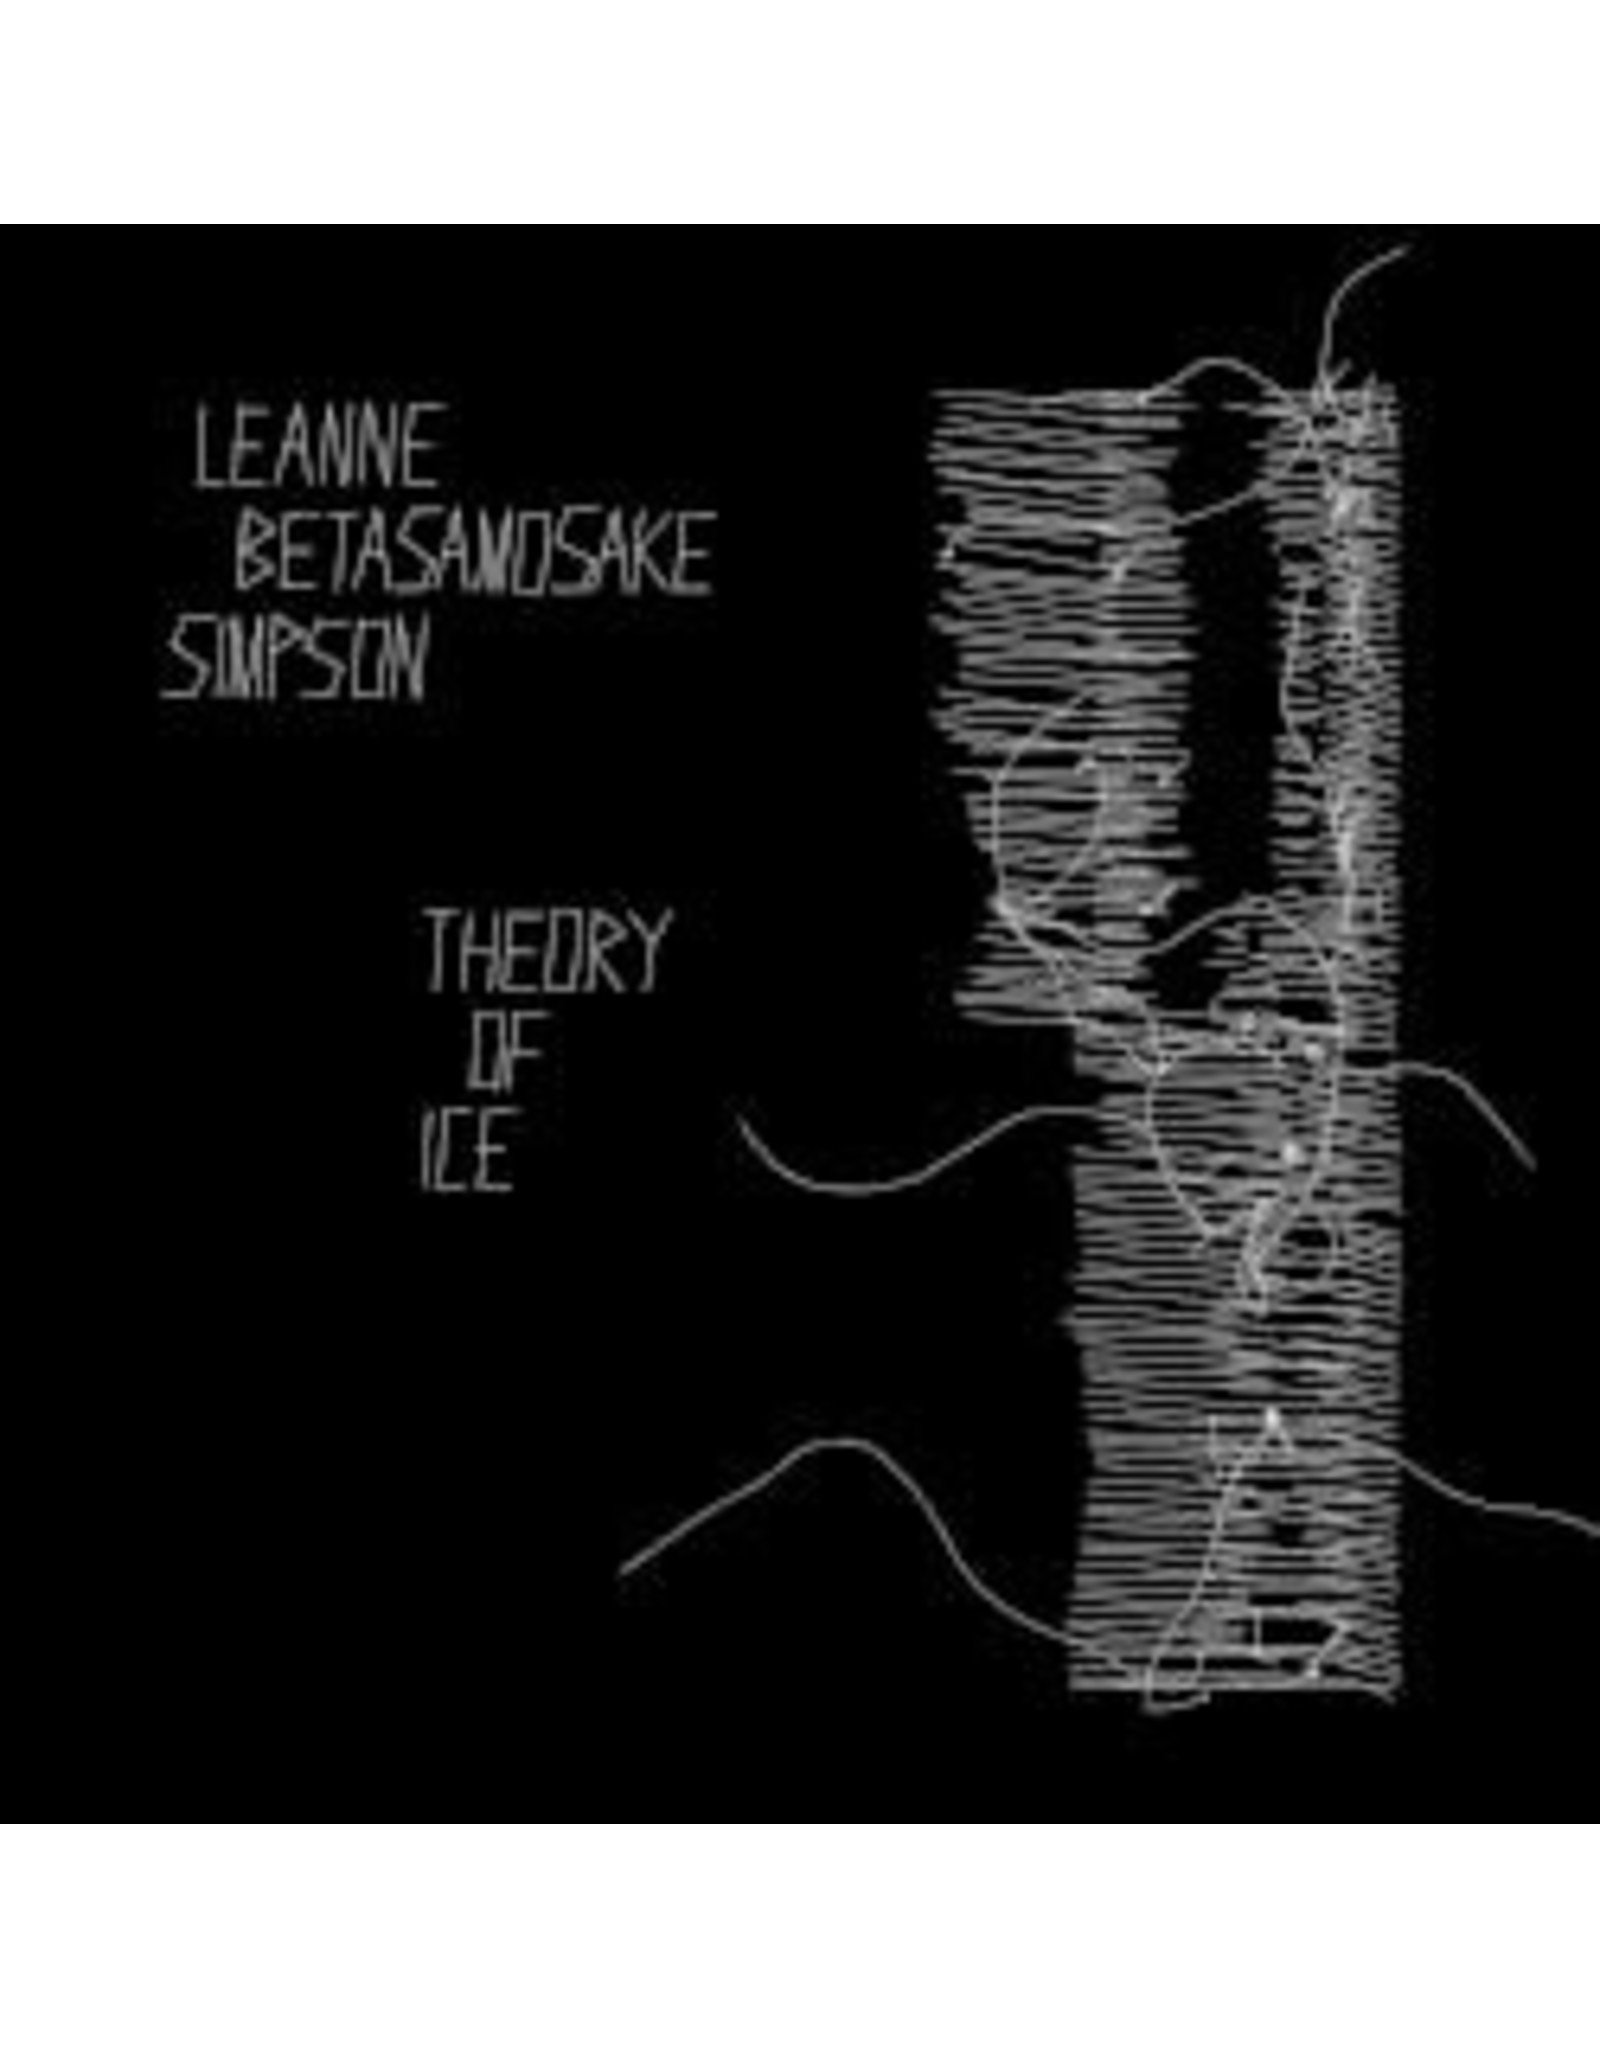 Betasamosake Simpson, Leanne - Theory Of Ice LP